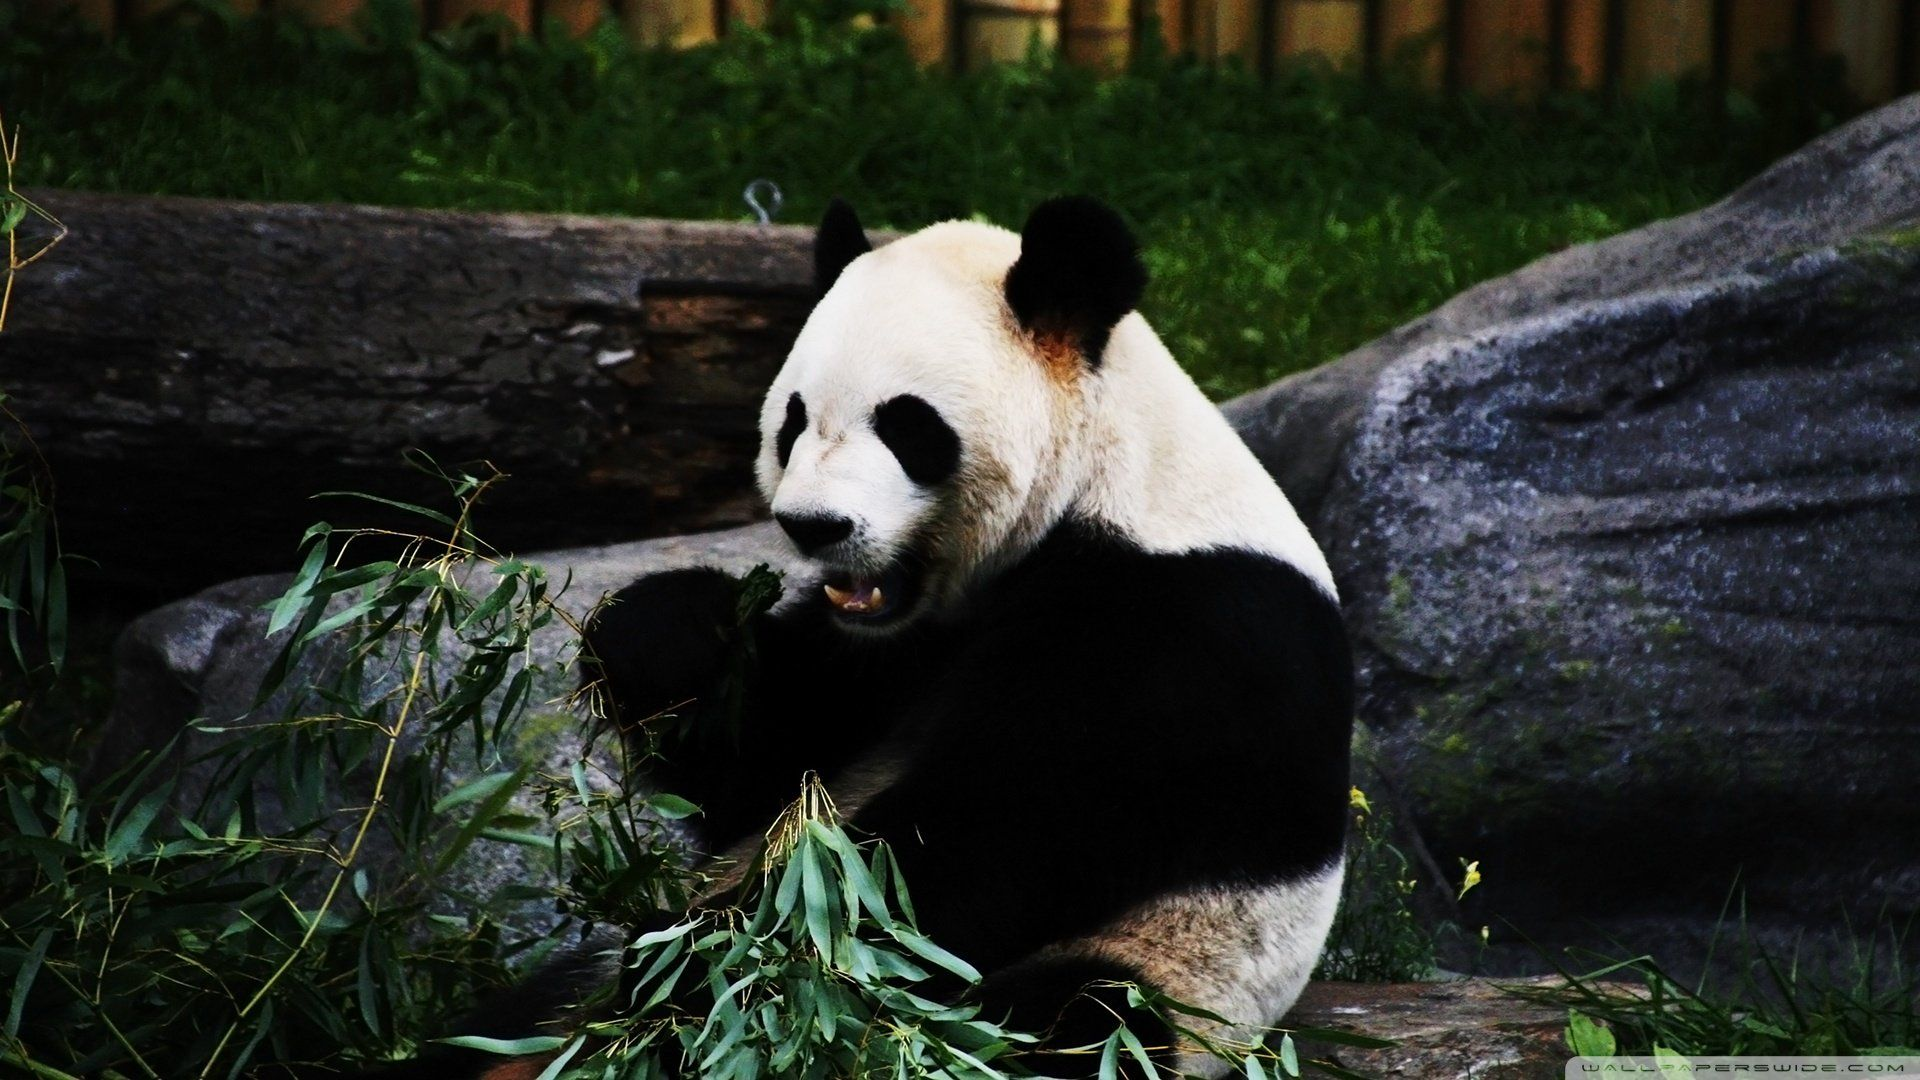 Pictures On A Desktop Of The Panda